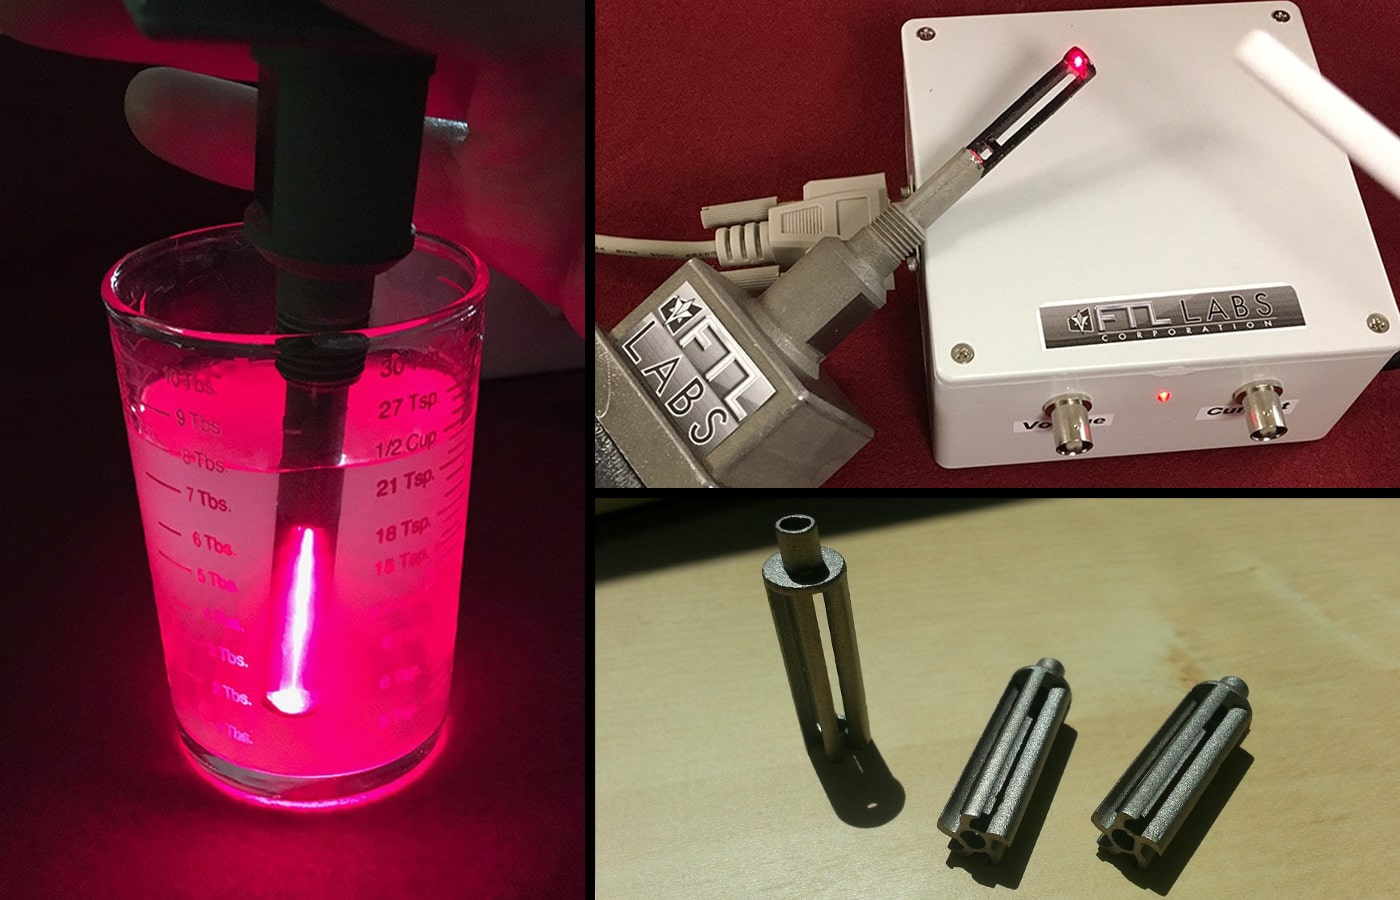 Images of different types of fiber sensors used to determine aspects and ratio about fluids.